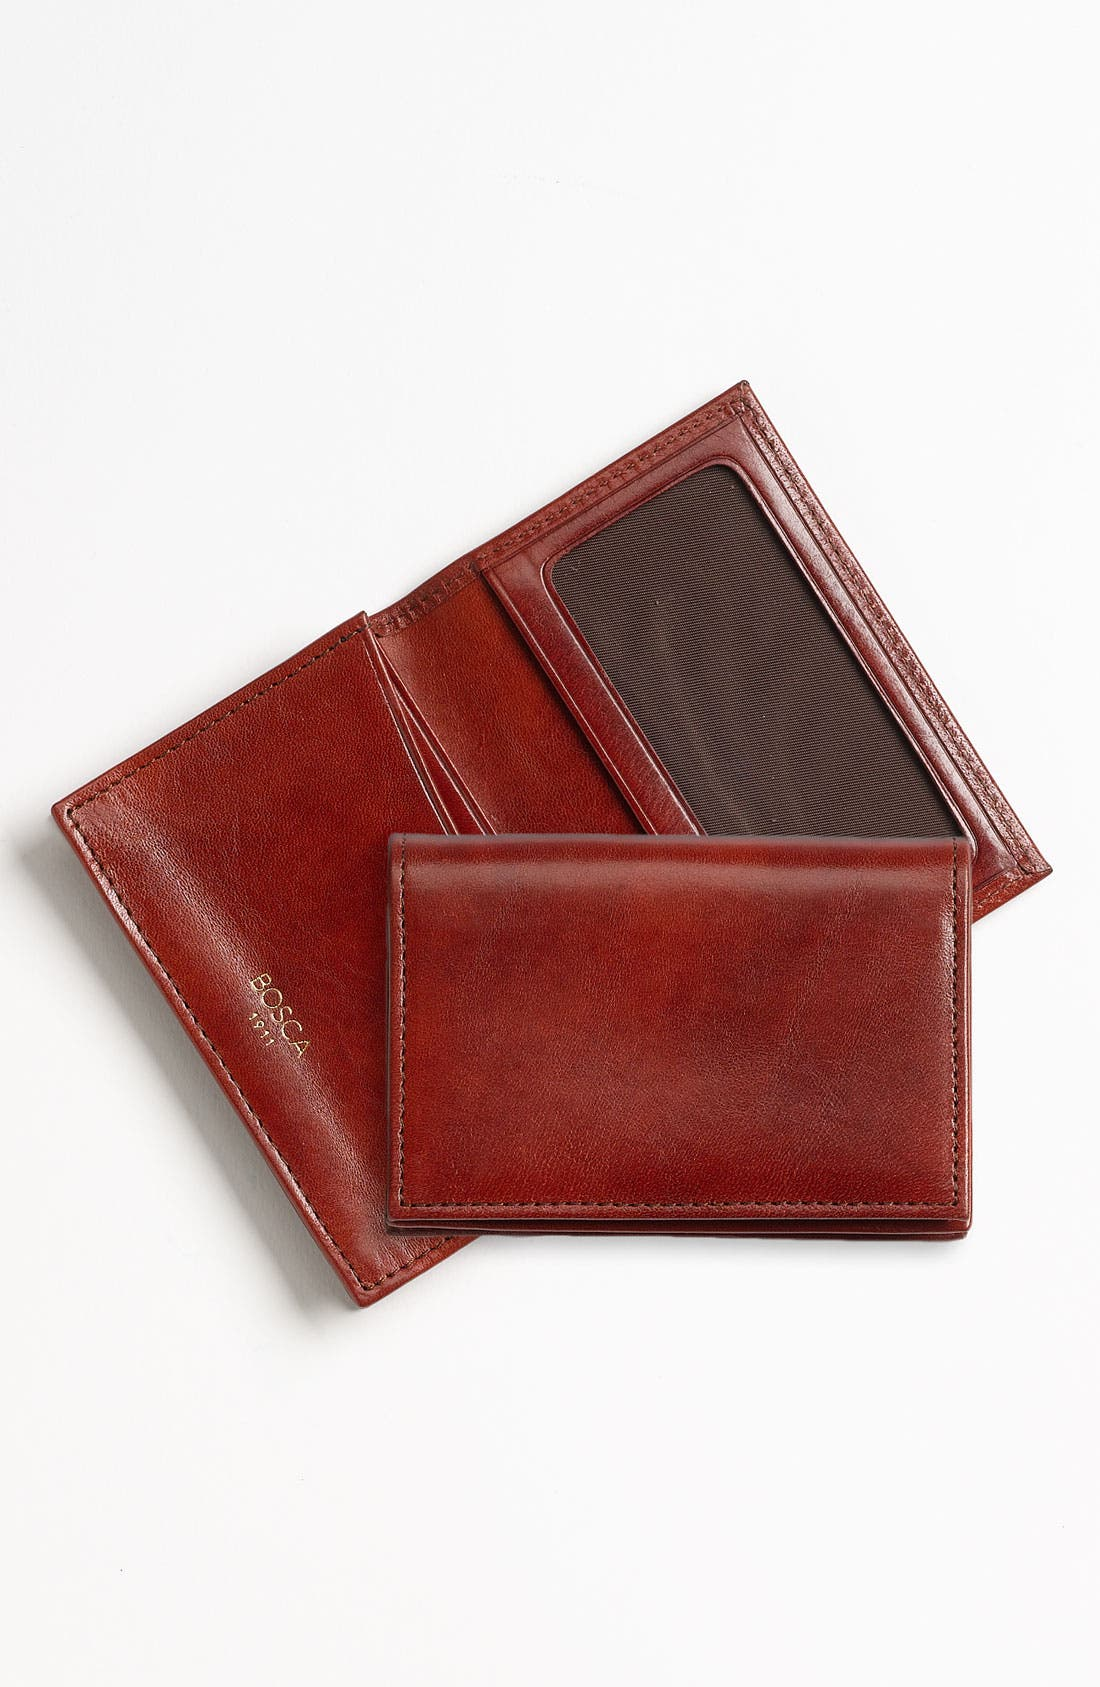 Alternate Image 1 Selected - Bosca 'Old Leather' Gusset Wallet